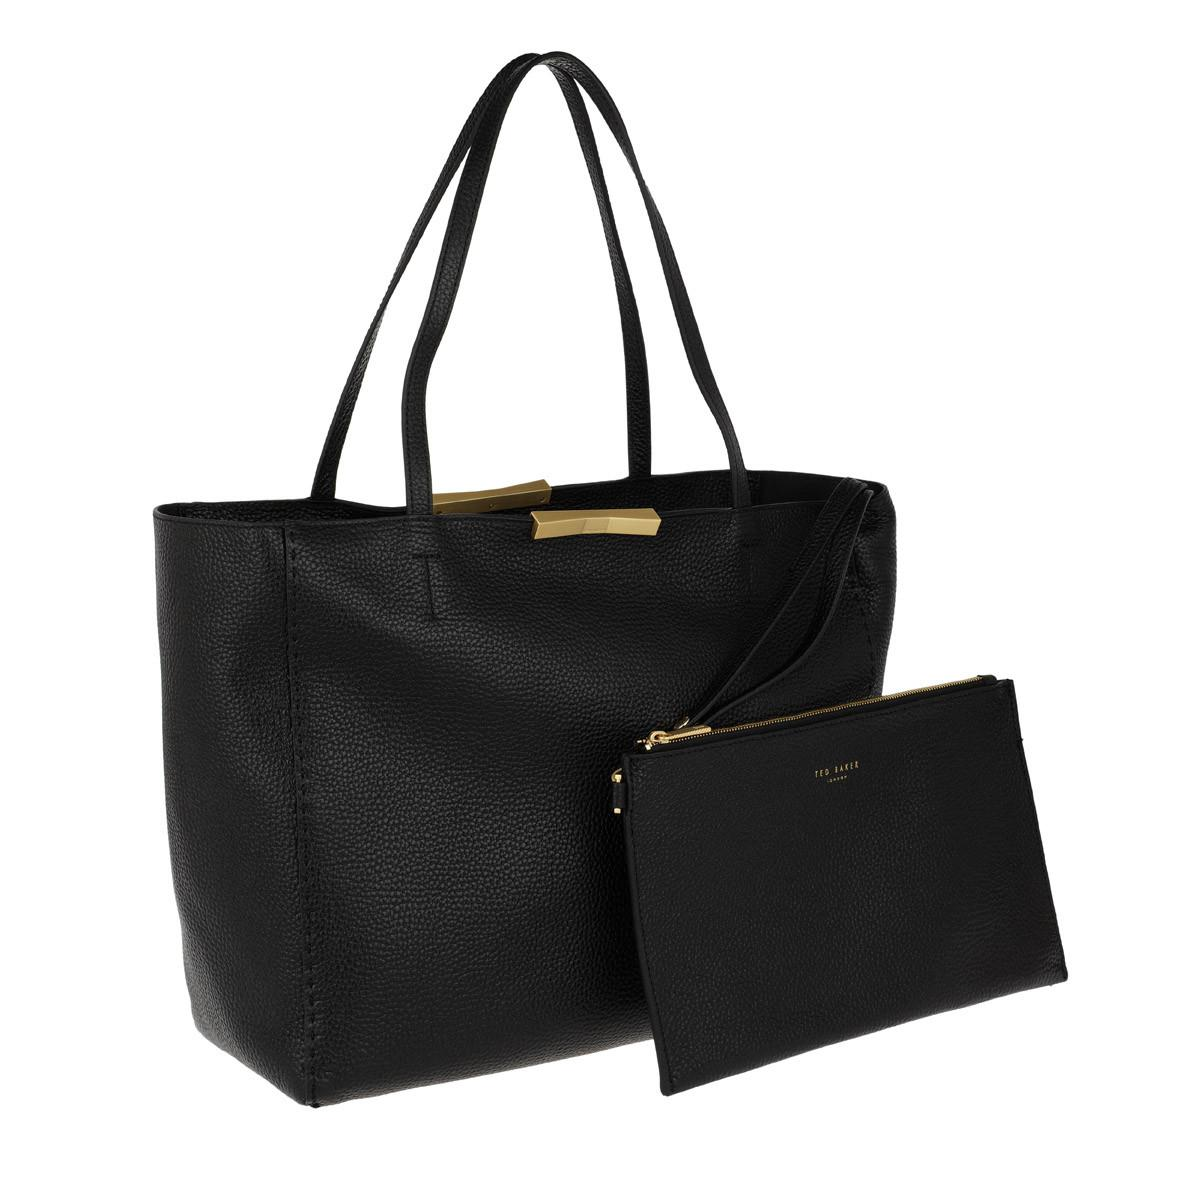 Ted Baker Leather Caullie Tote Black